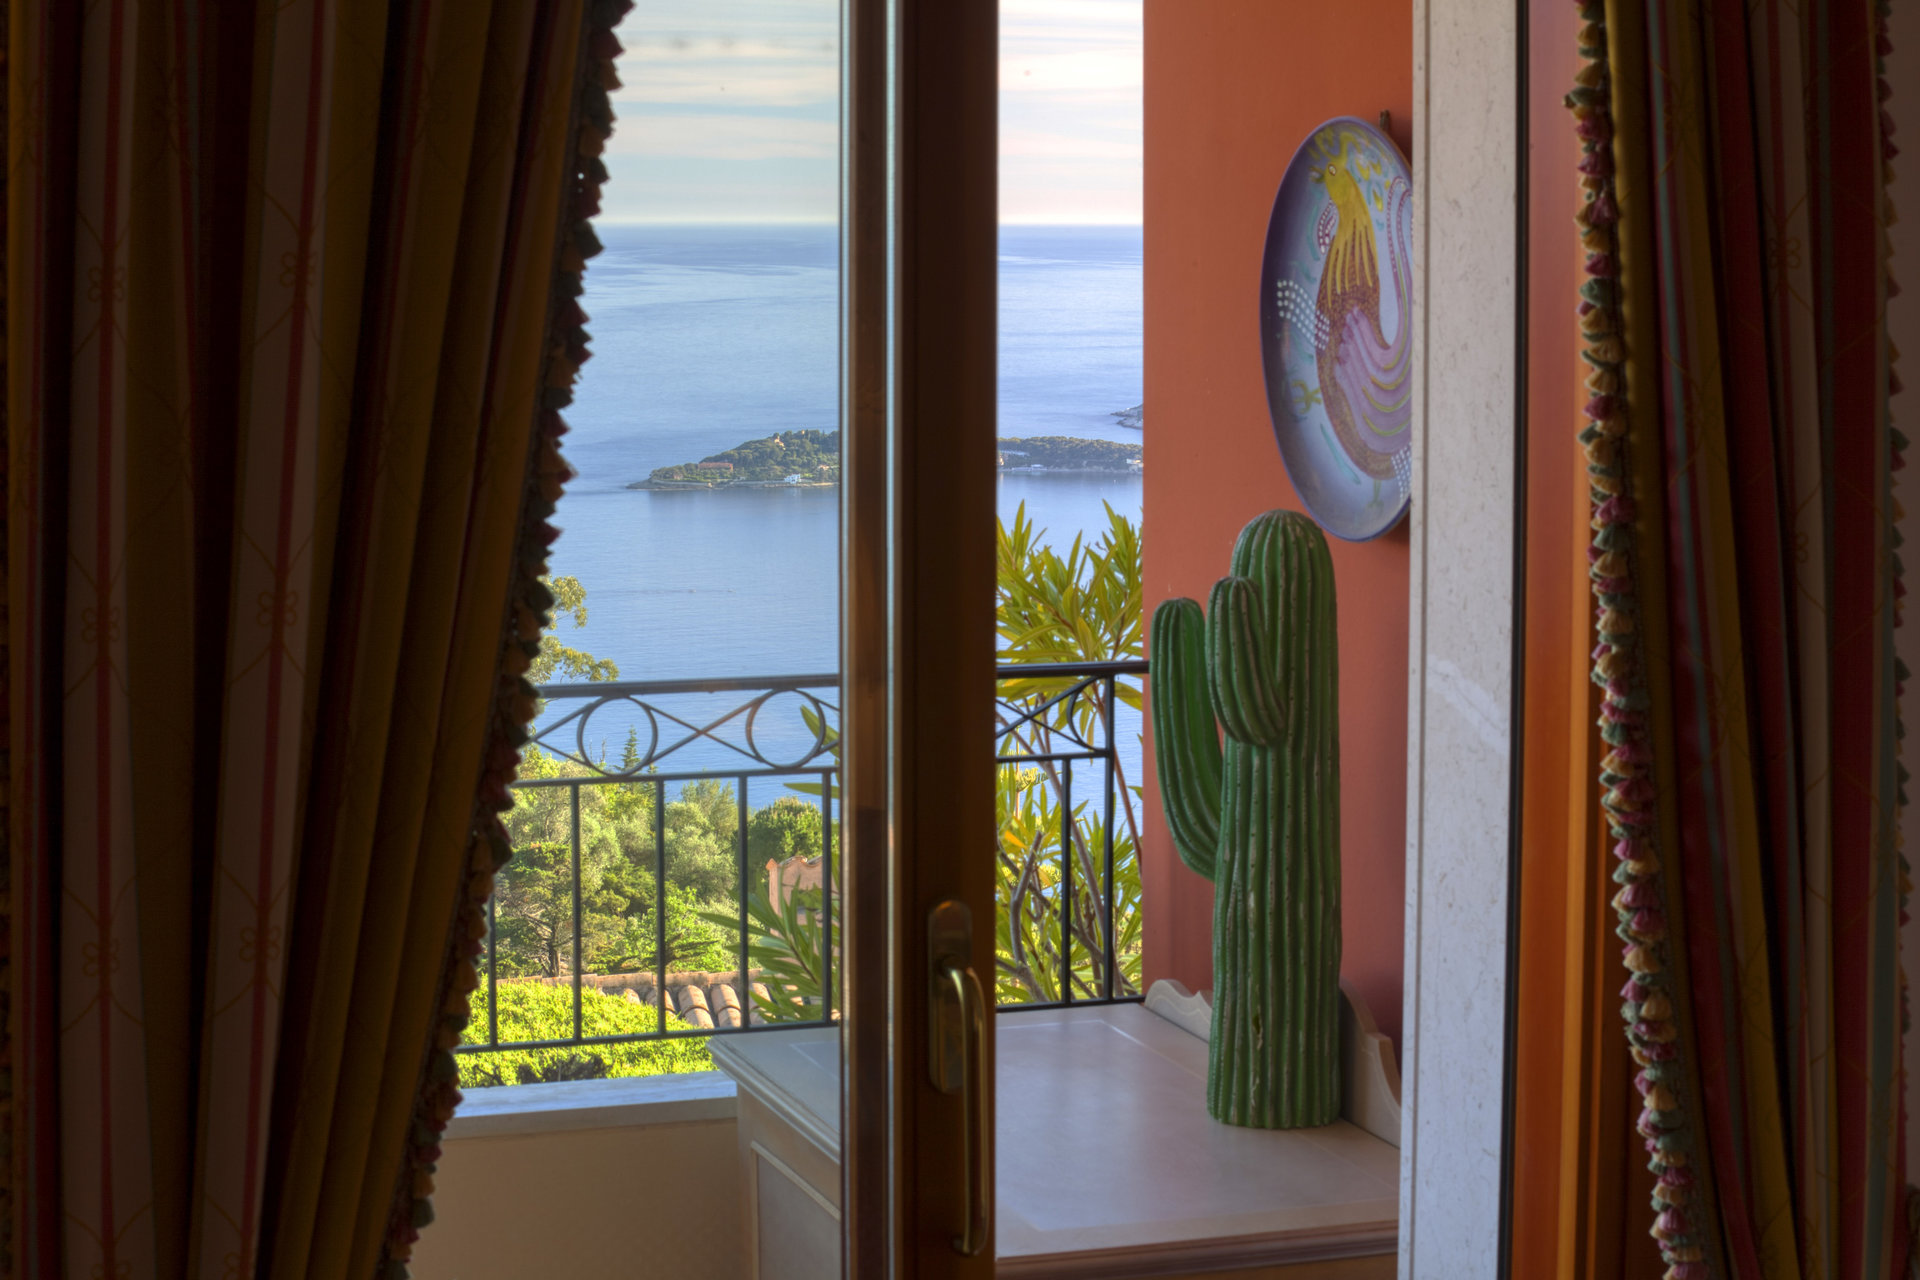 Eze - 2 rooms 42m2 sea view with terrace 14m2